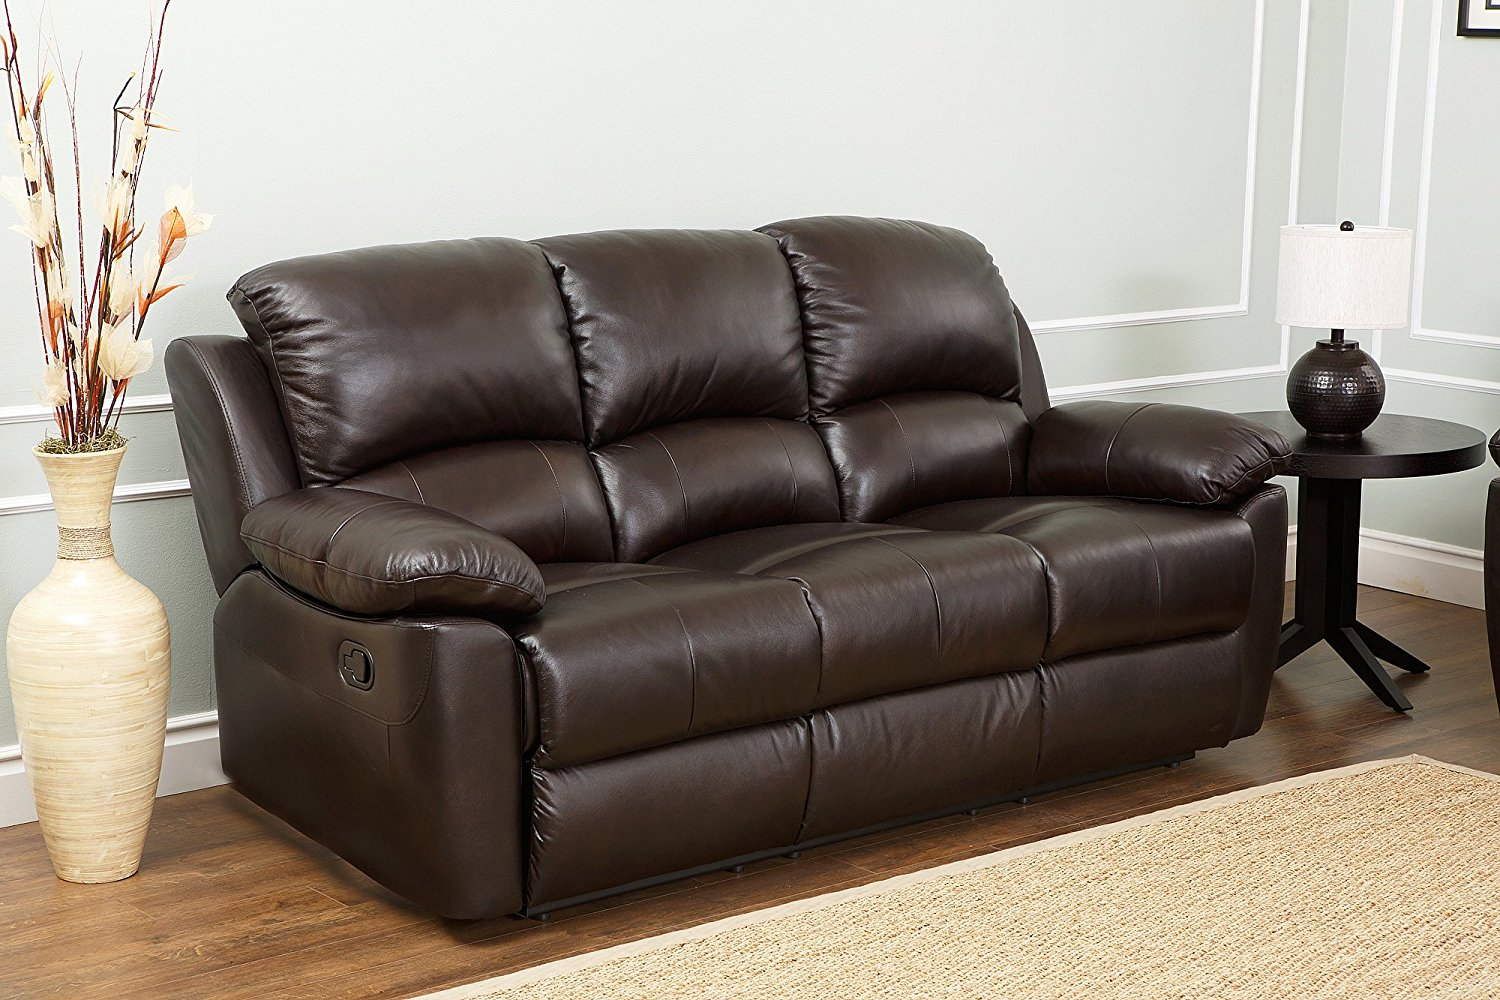 leather reclining sofa amazon.com: abbyson westwood top grain leather sofa: home u0026 kitchen CMPEJRA